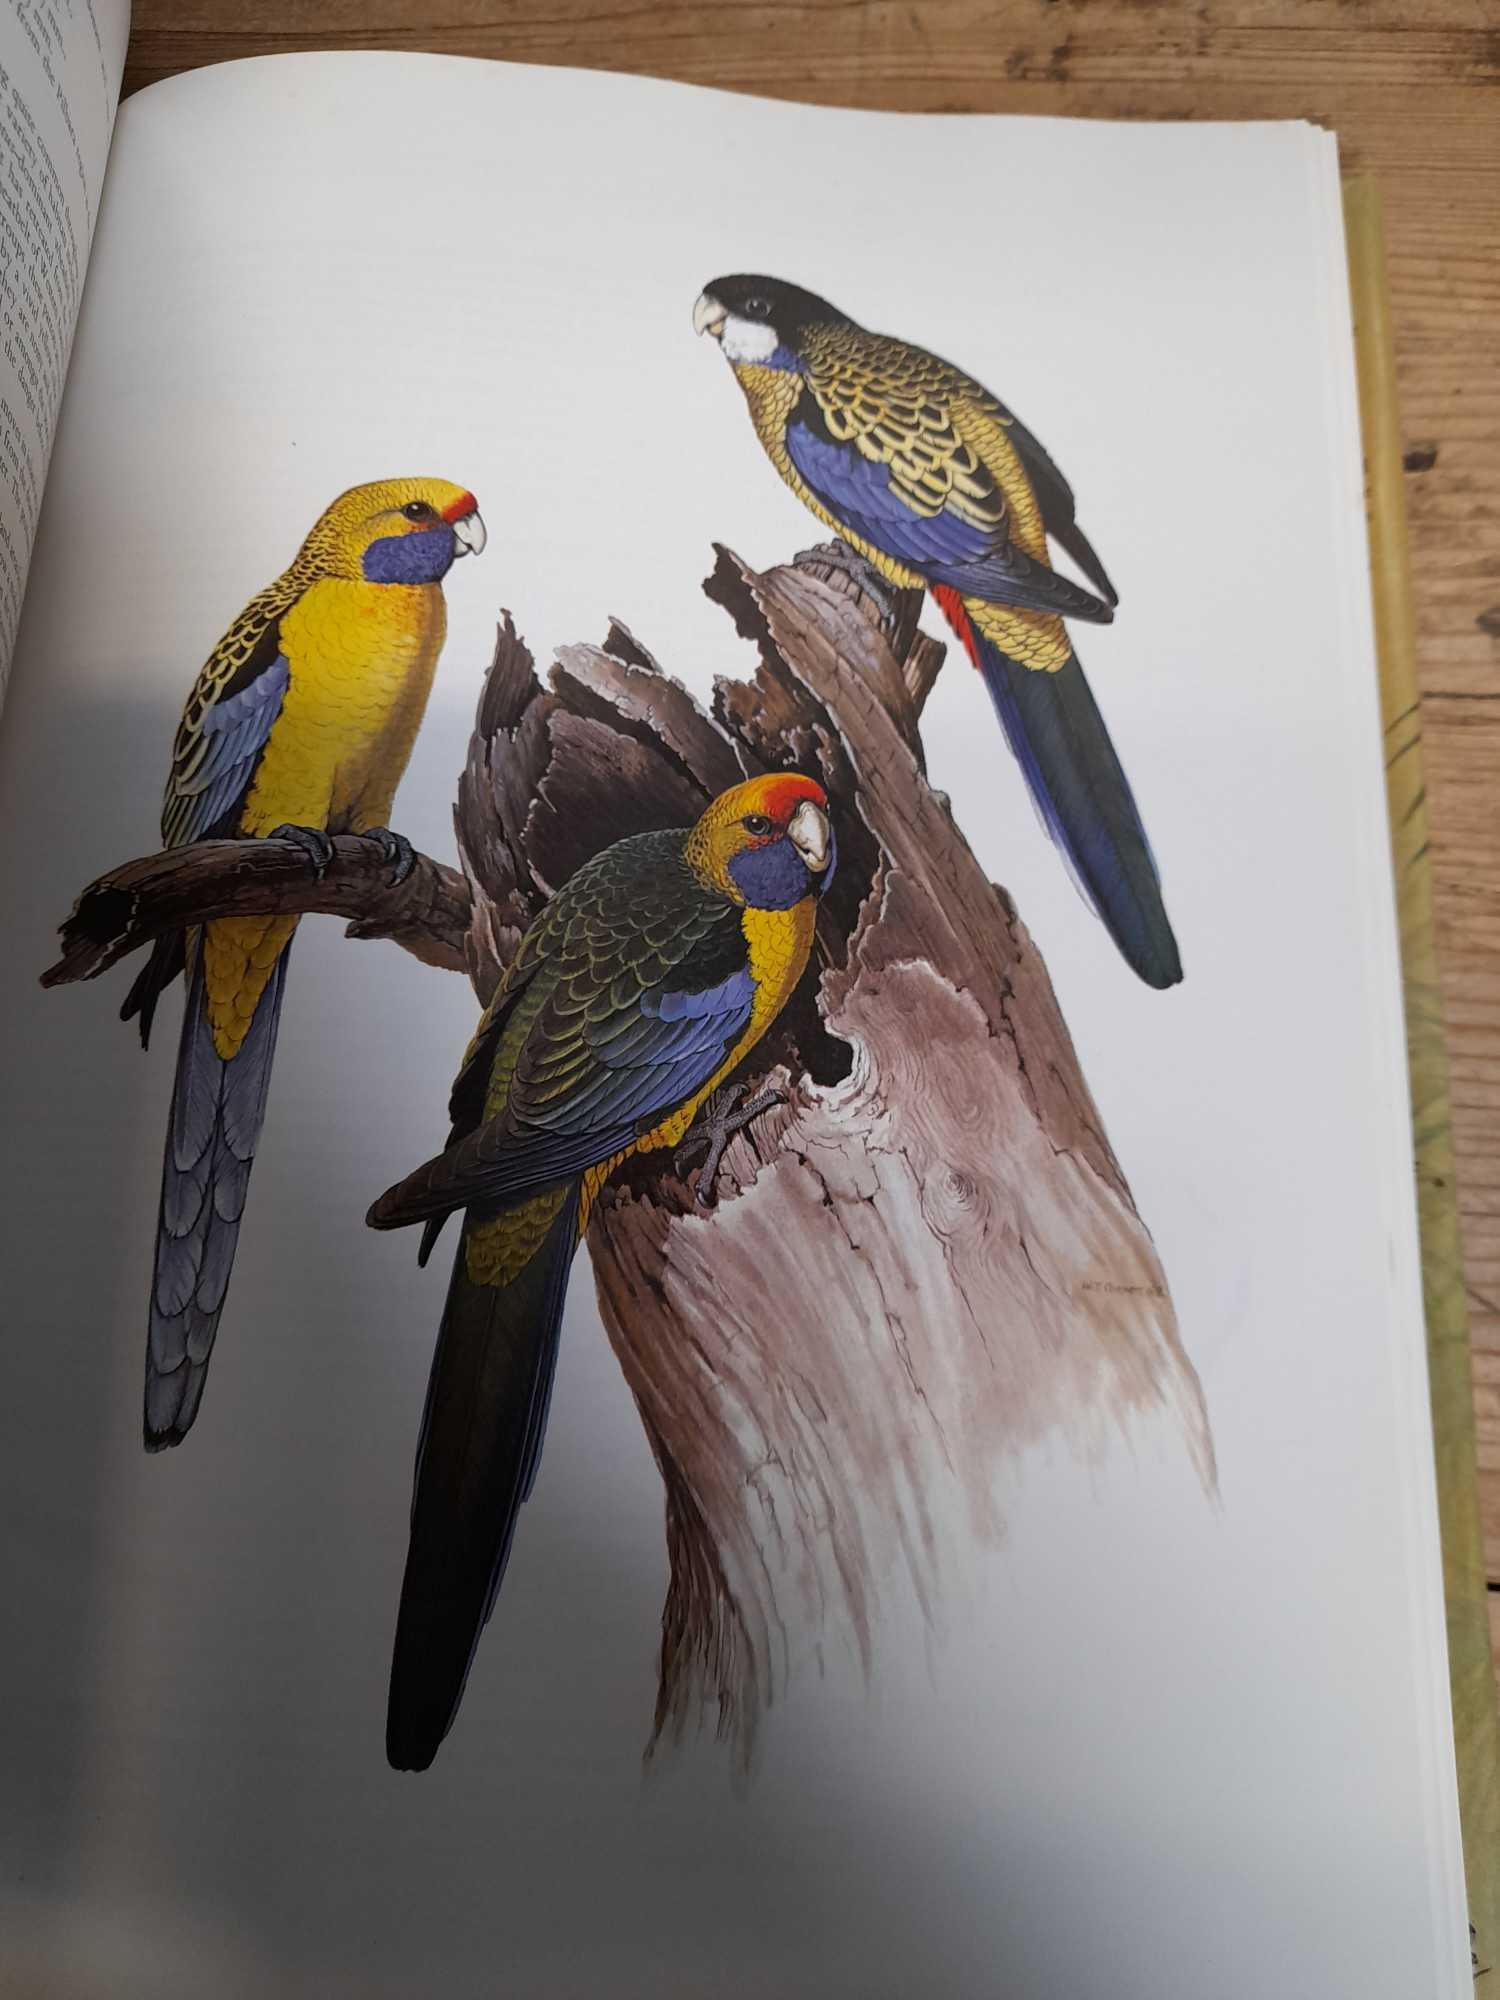 3 PARROT BOOKS - Image 18 of 20